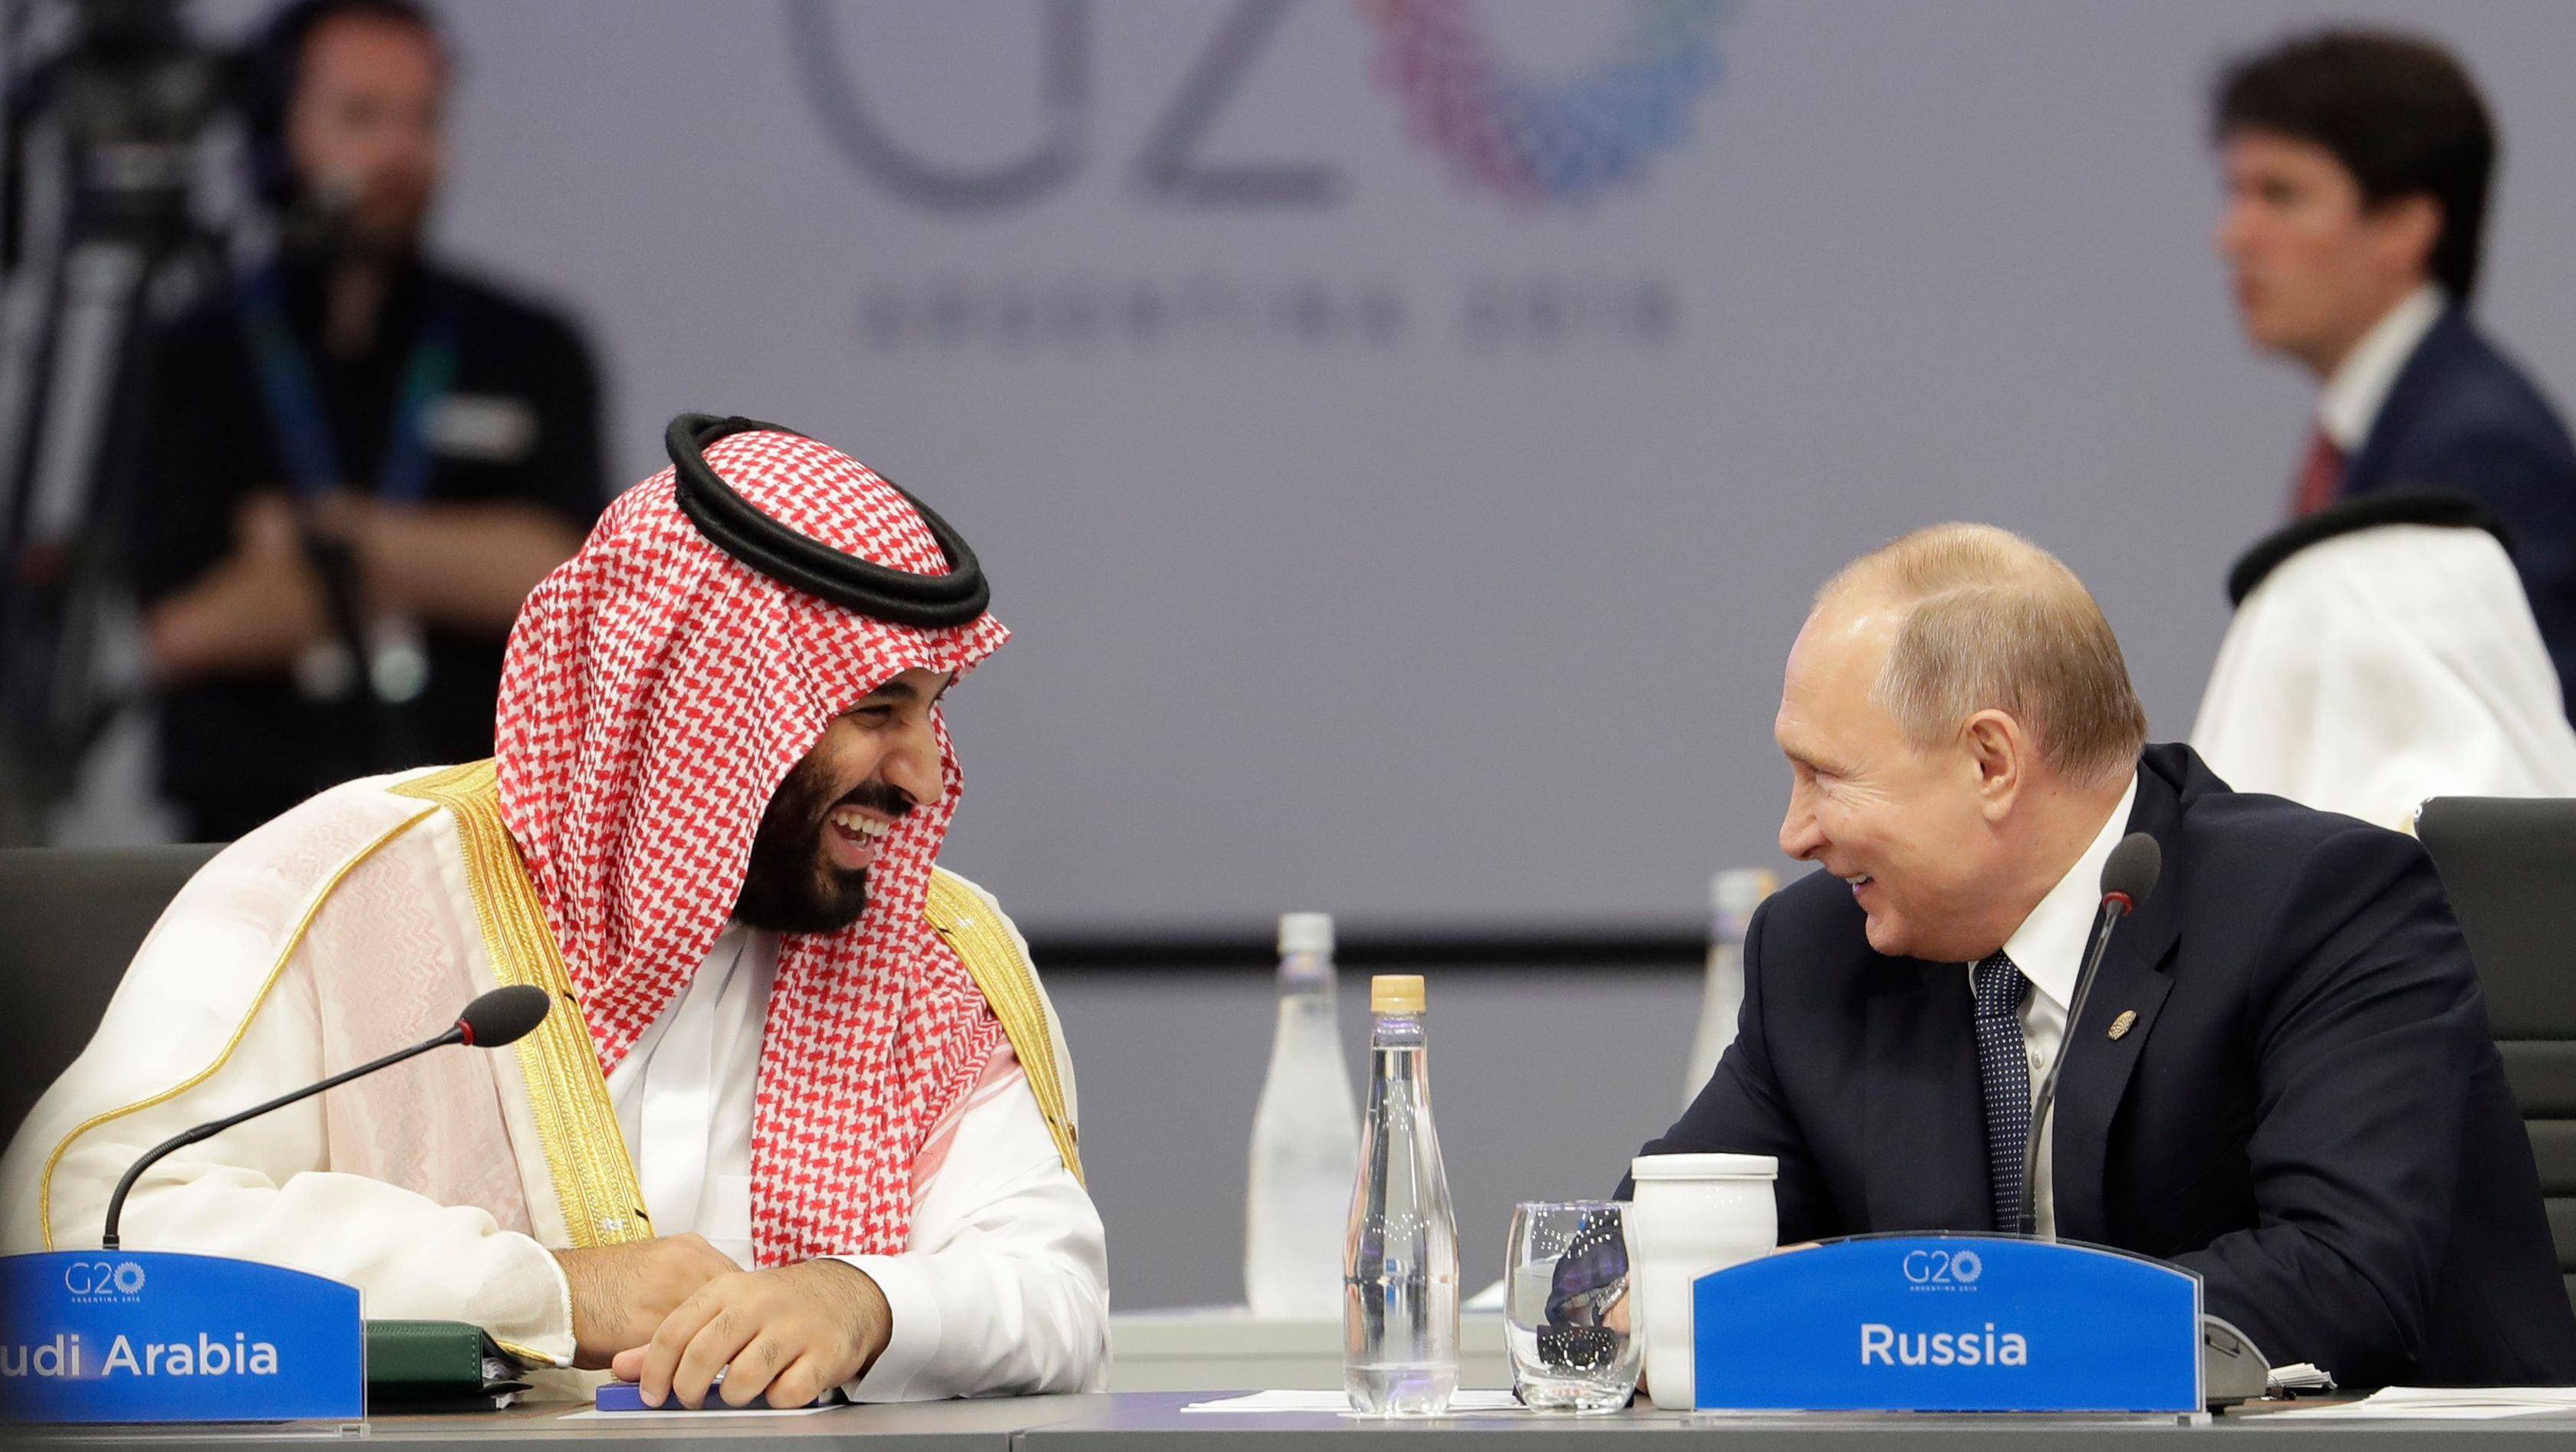 Vladimir Putin and Mohammad bin Salman G20 high five